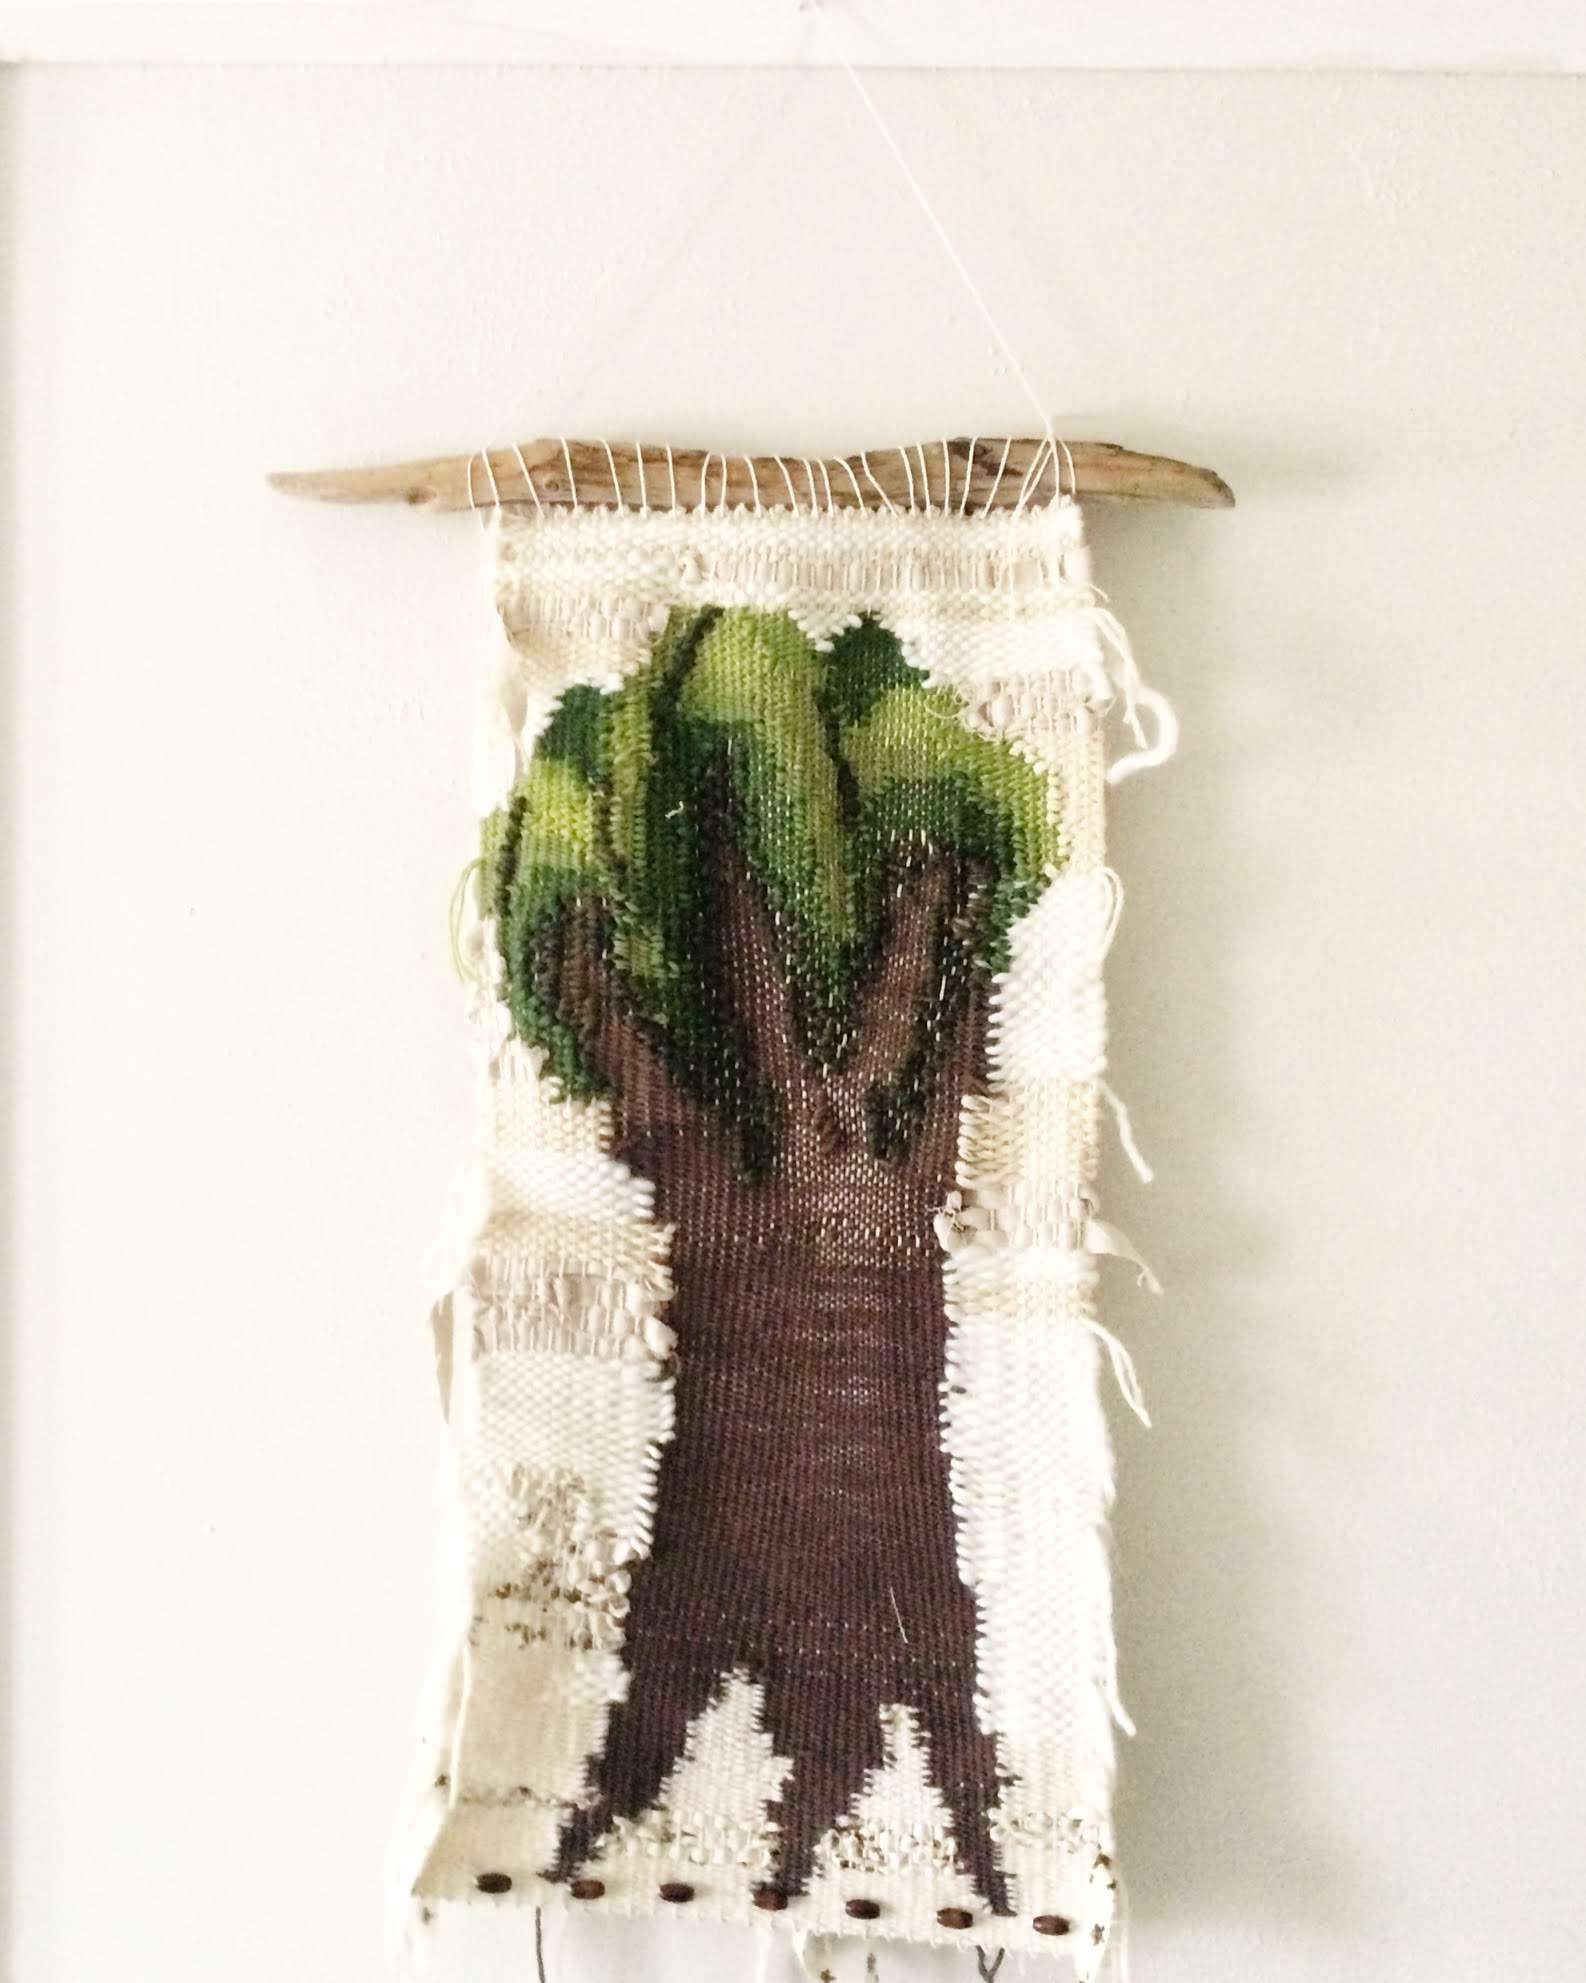 Growing a Tree: The Act of Weaving